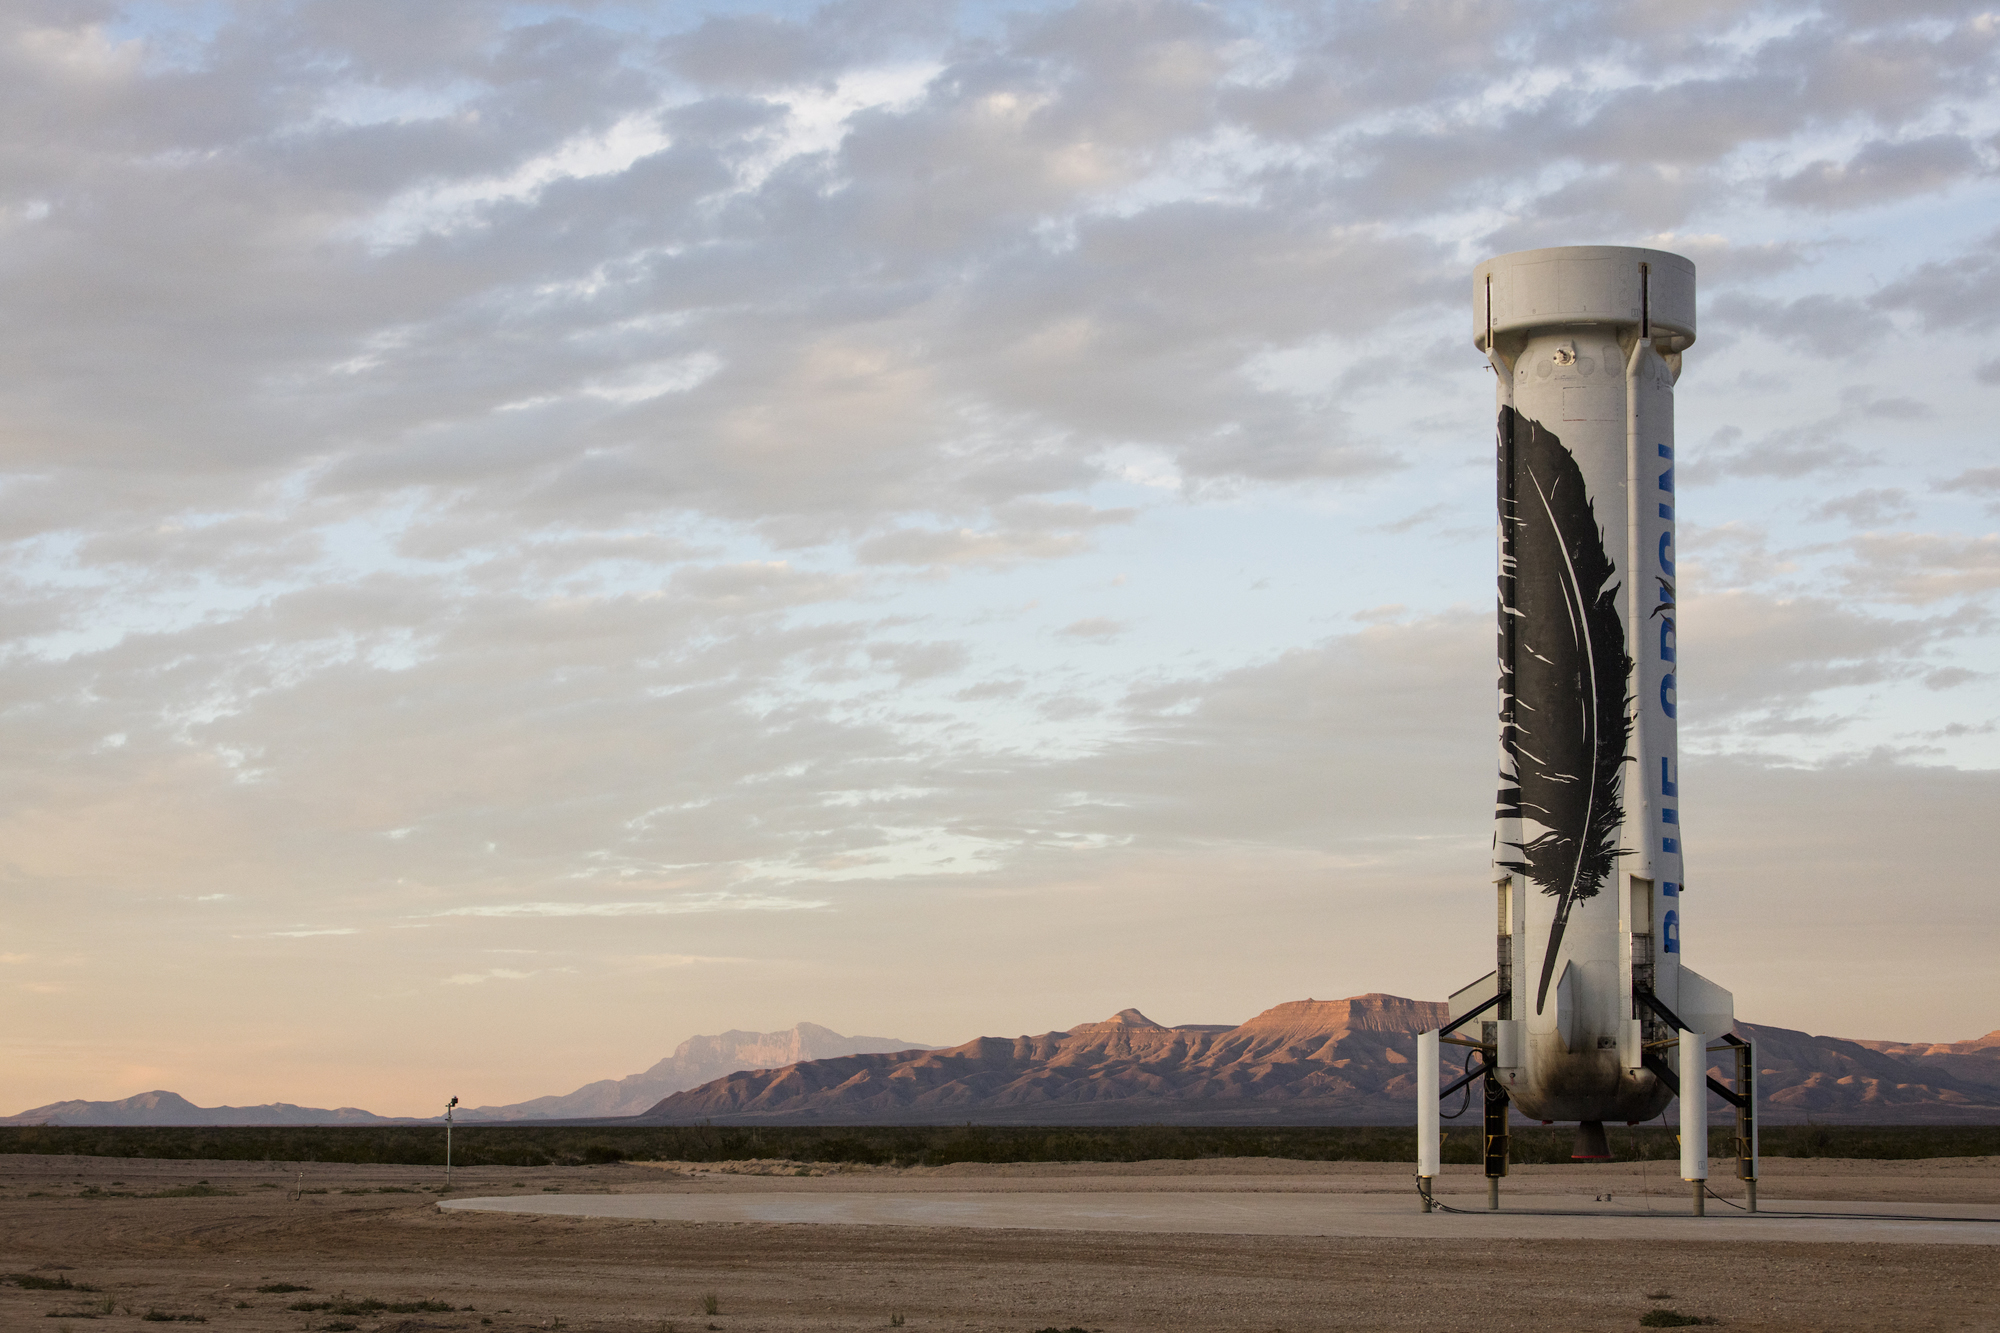 Reusable Rockets: Space Travel's 'Holy Grail' Almost Here